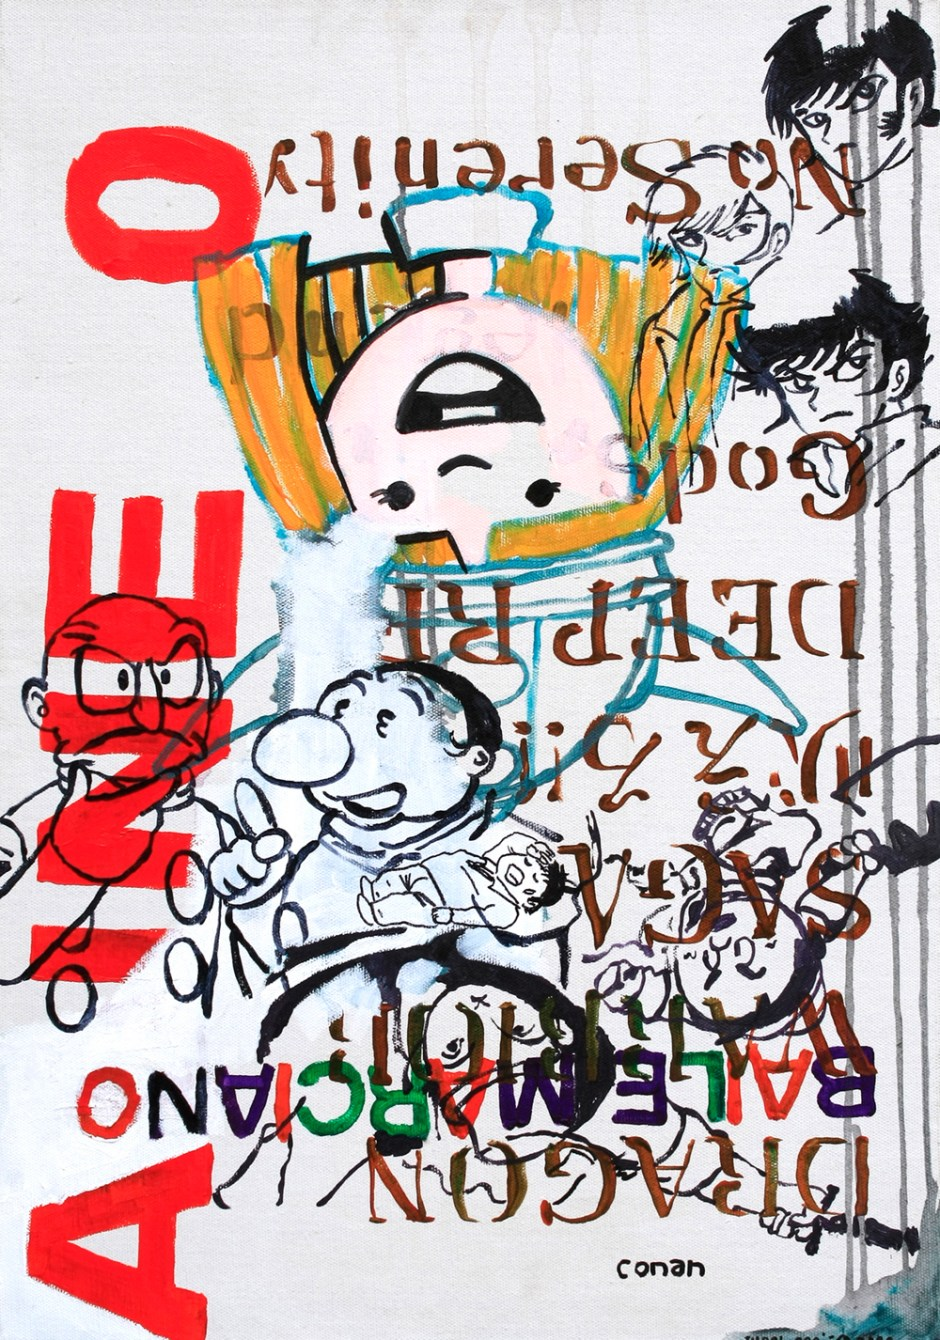 025-BAILE-MARCIANO-73X54CM-MIXED-MEDIA-ON-CANVAS-2500-EURO